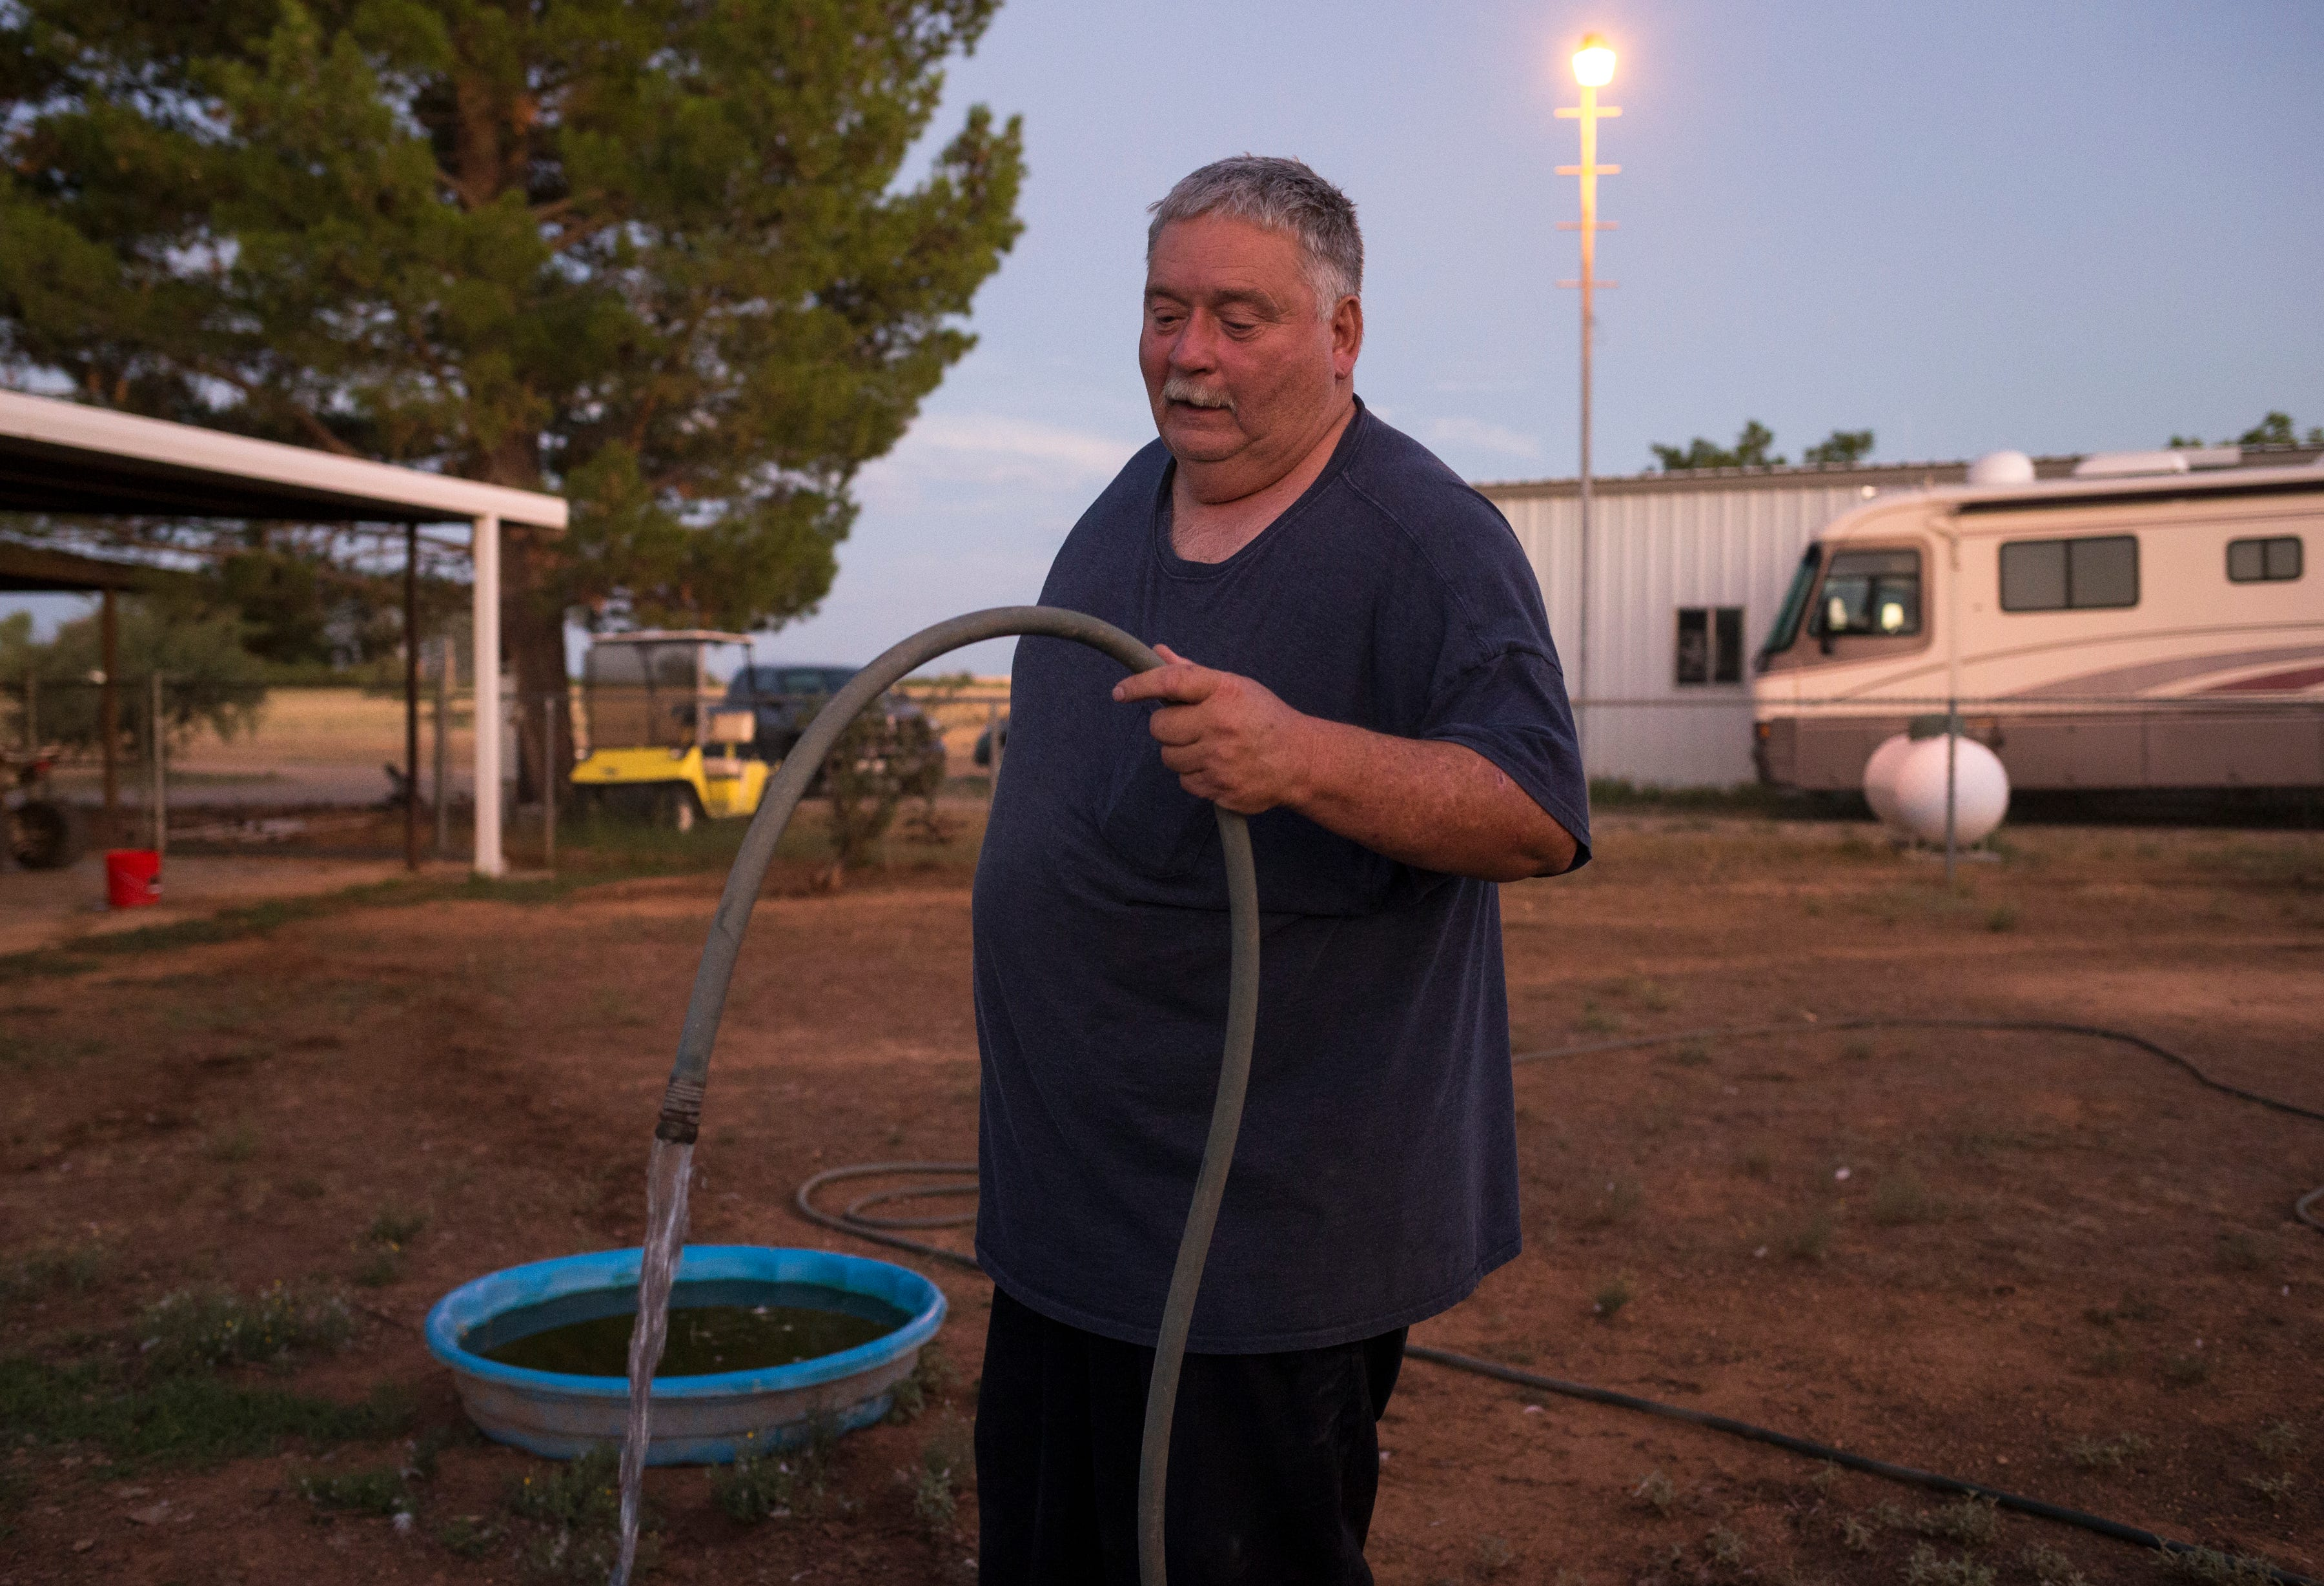 Richard Wilson waters his animals, August 13, 2019, at his home in Cochise, Arizona. Wilson's well went dry and he is now hauling water to his property.